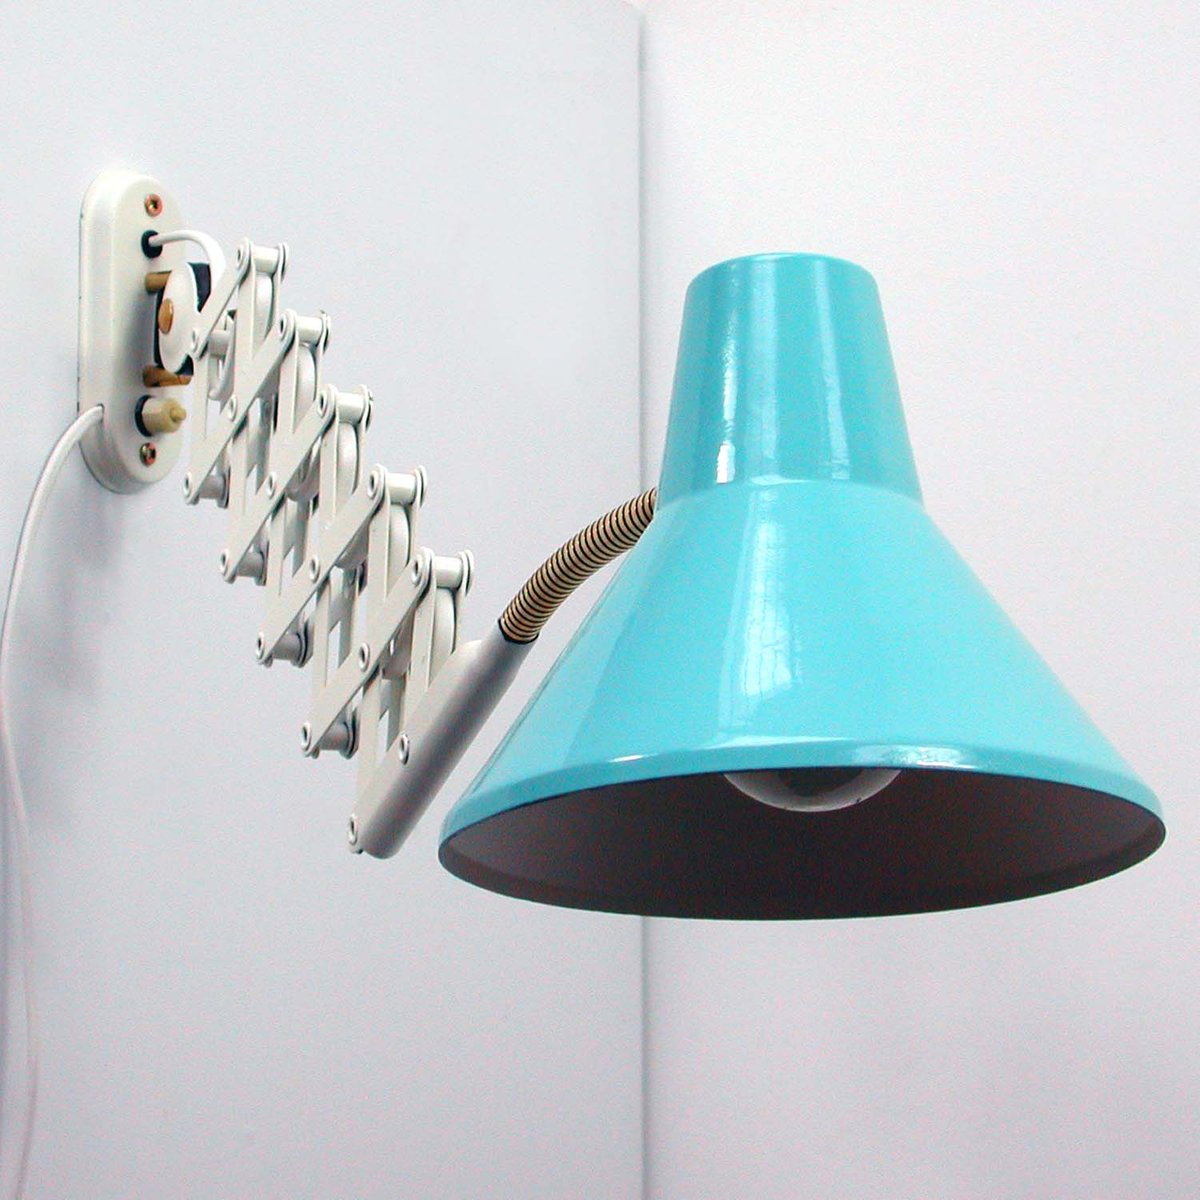 Wall Mounted Extendable Lamp : Mid-Century Vintage Italian Extendable Blue Scissor Wall Lamp, 1950s for sale at Pamono